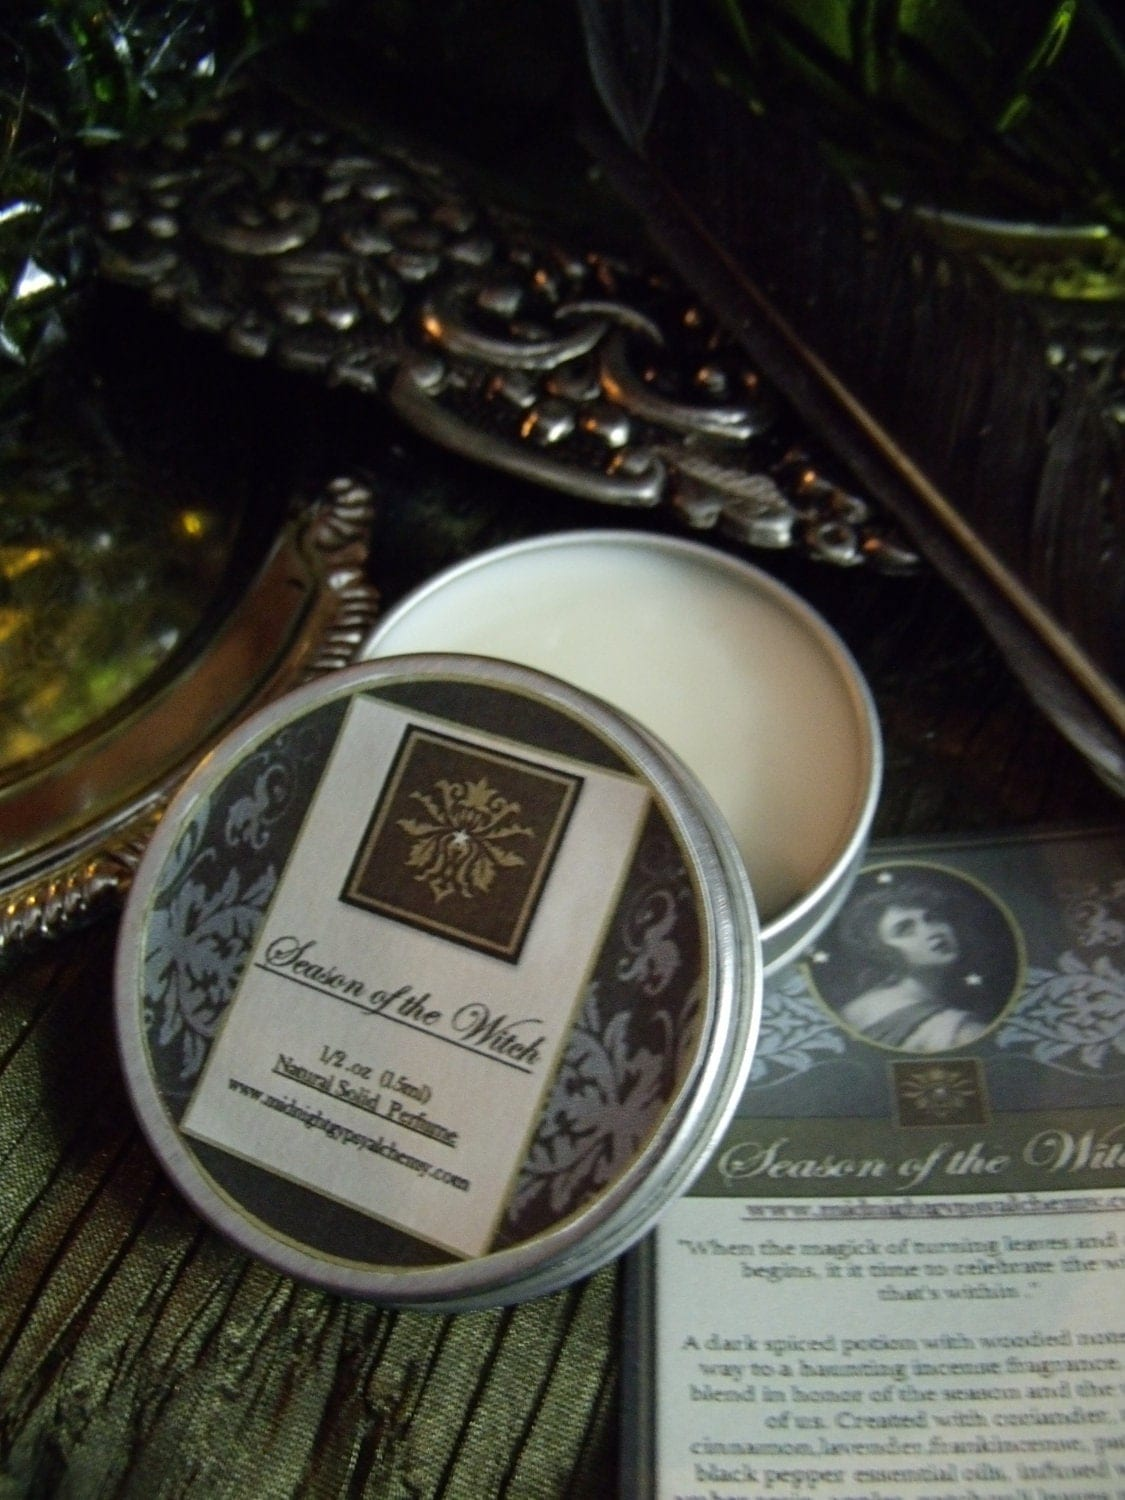 Season of The Witch Natural Solid Perfume Gypsy Apothecary  Coriander,Rose, Apple, Amber, Lavender,Patchouli,